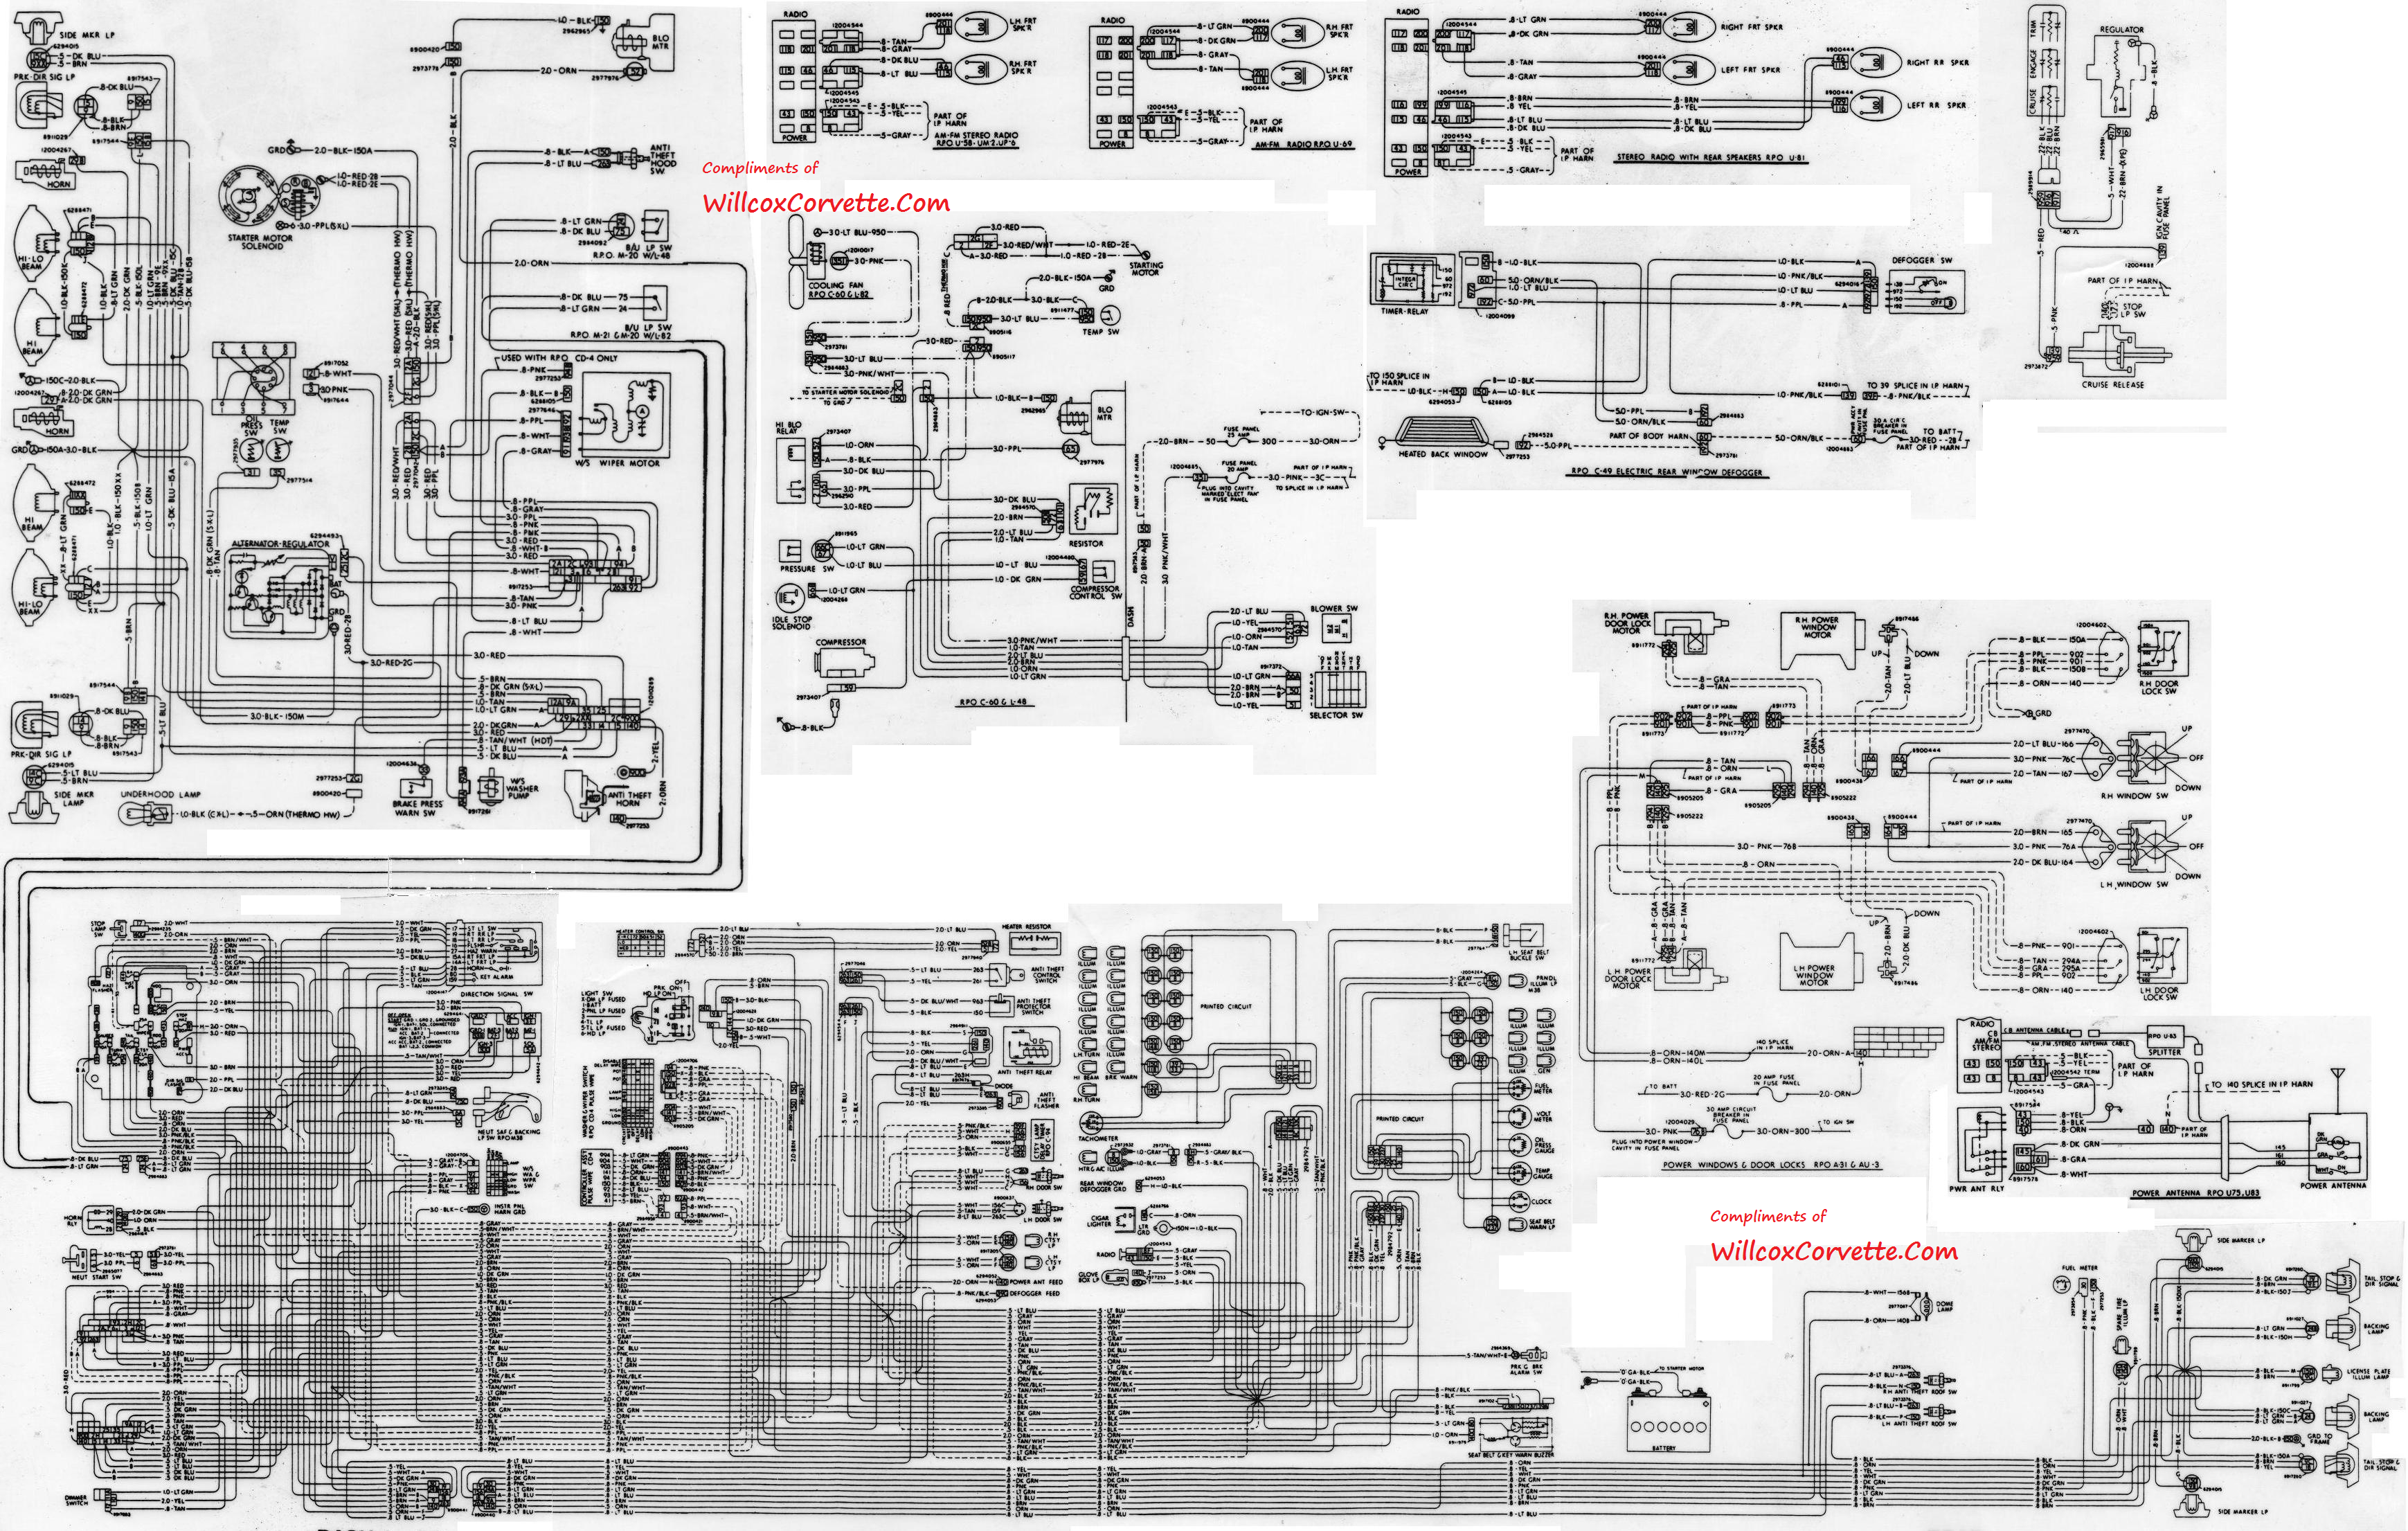 1979 wiring diagram - corvetteforum - chevrolet corvette forum discussion  corvette forum